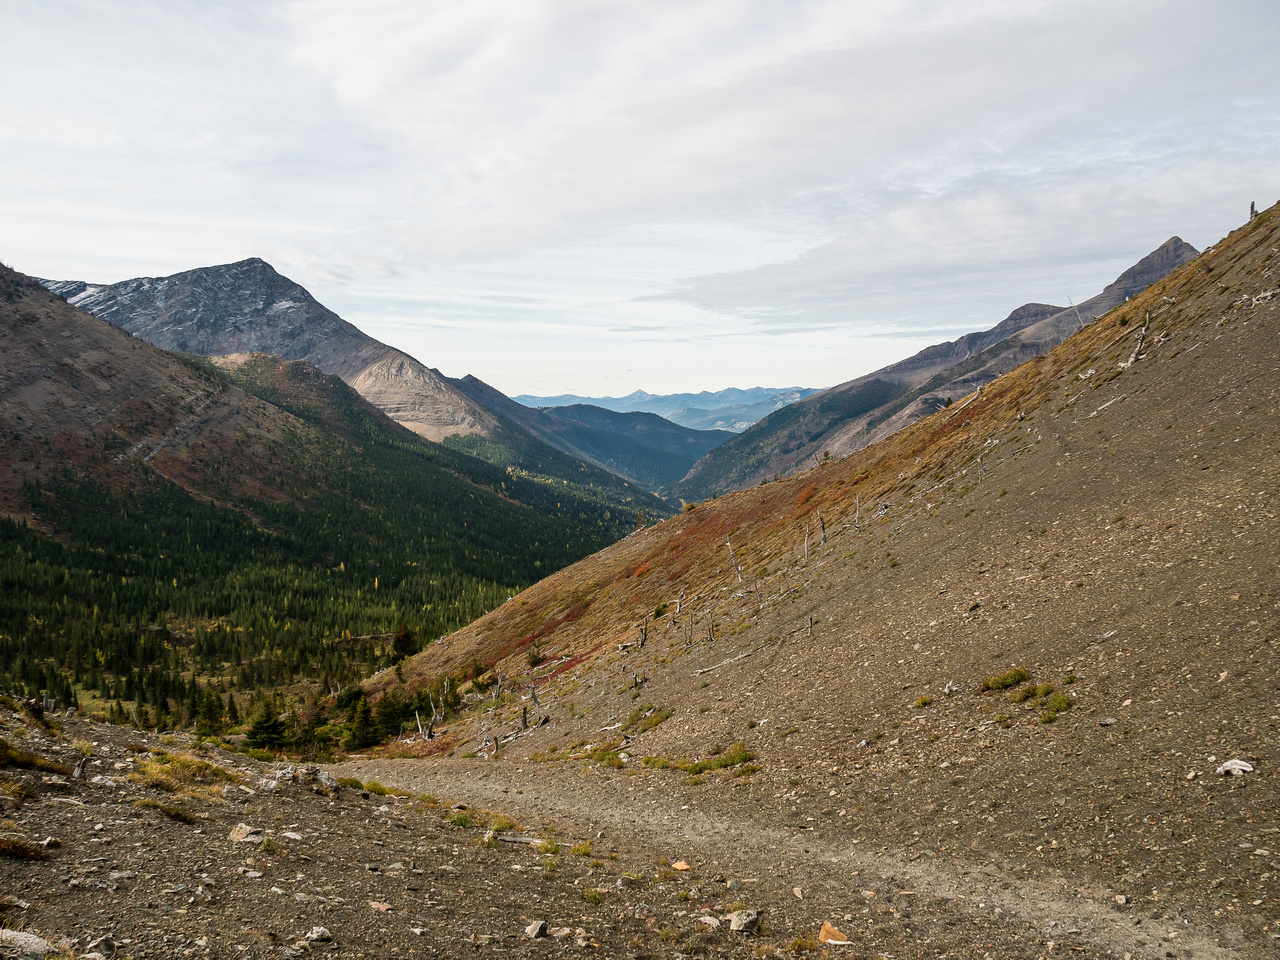 We briefly dropped over the pass before taking a trail in the scree going left.